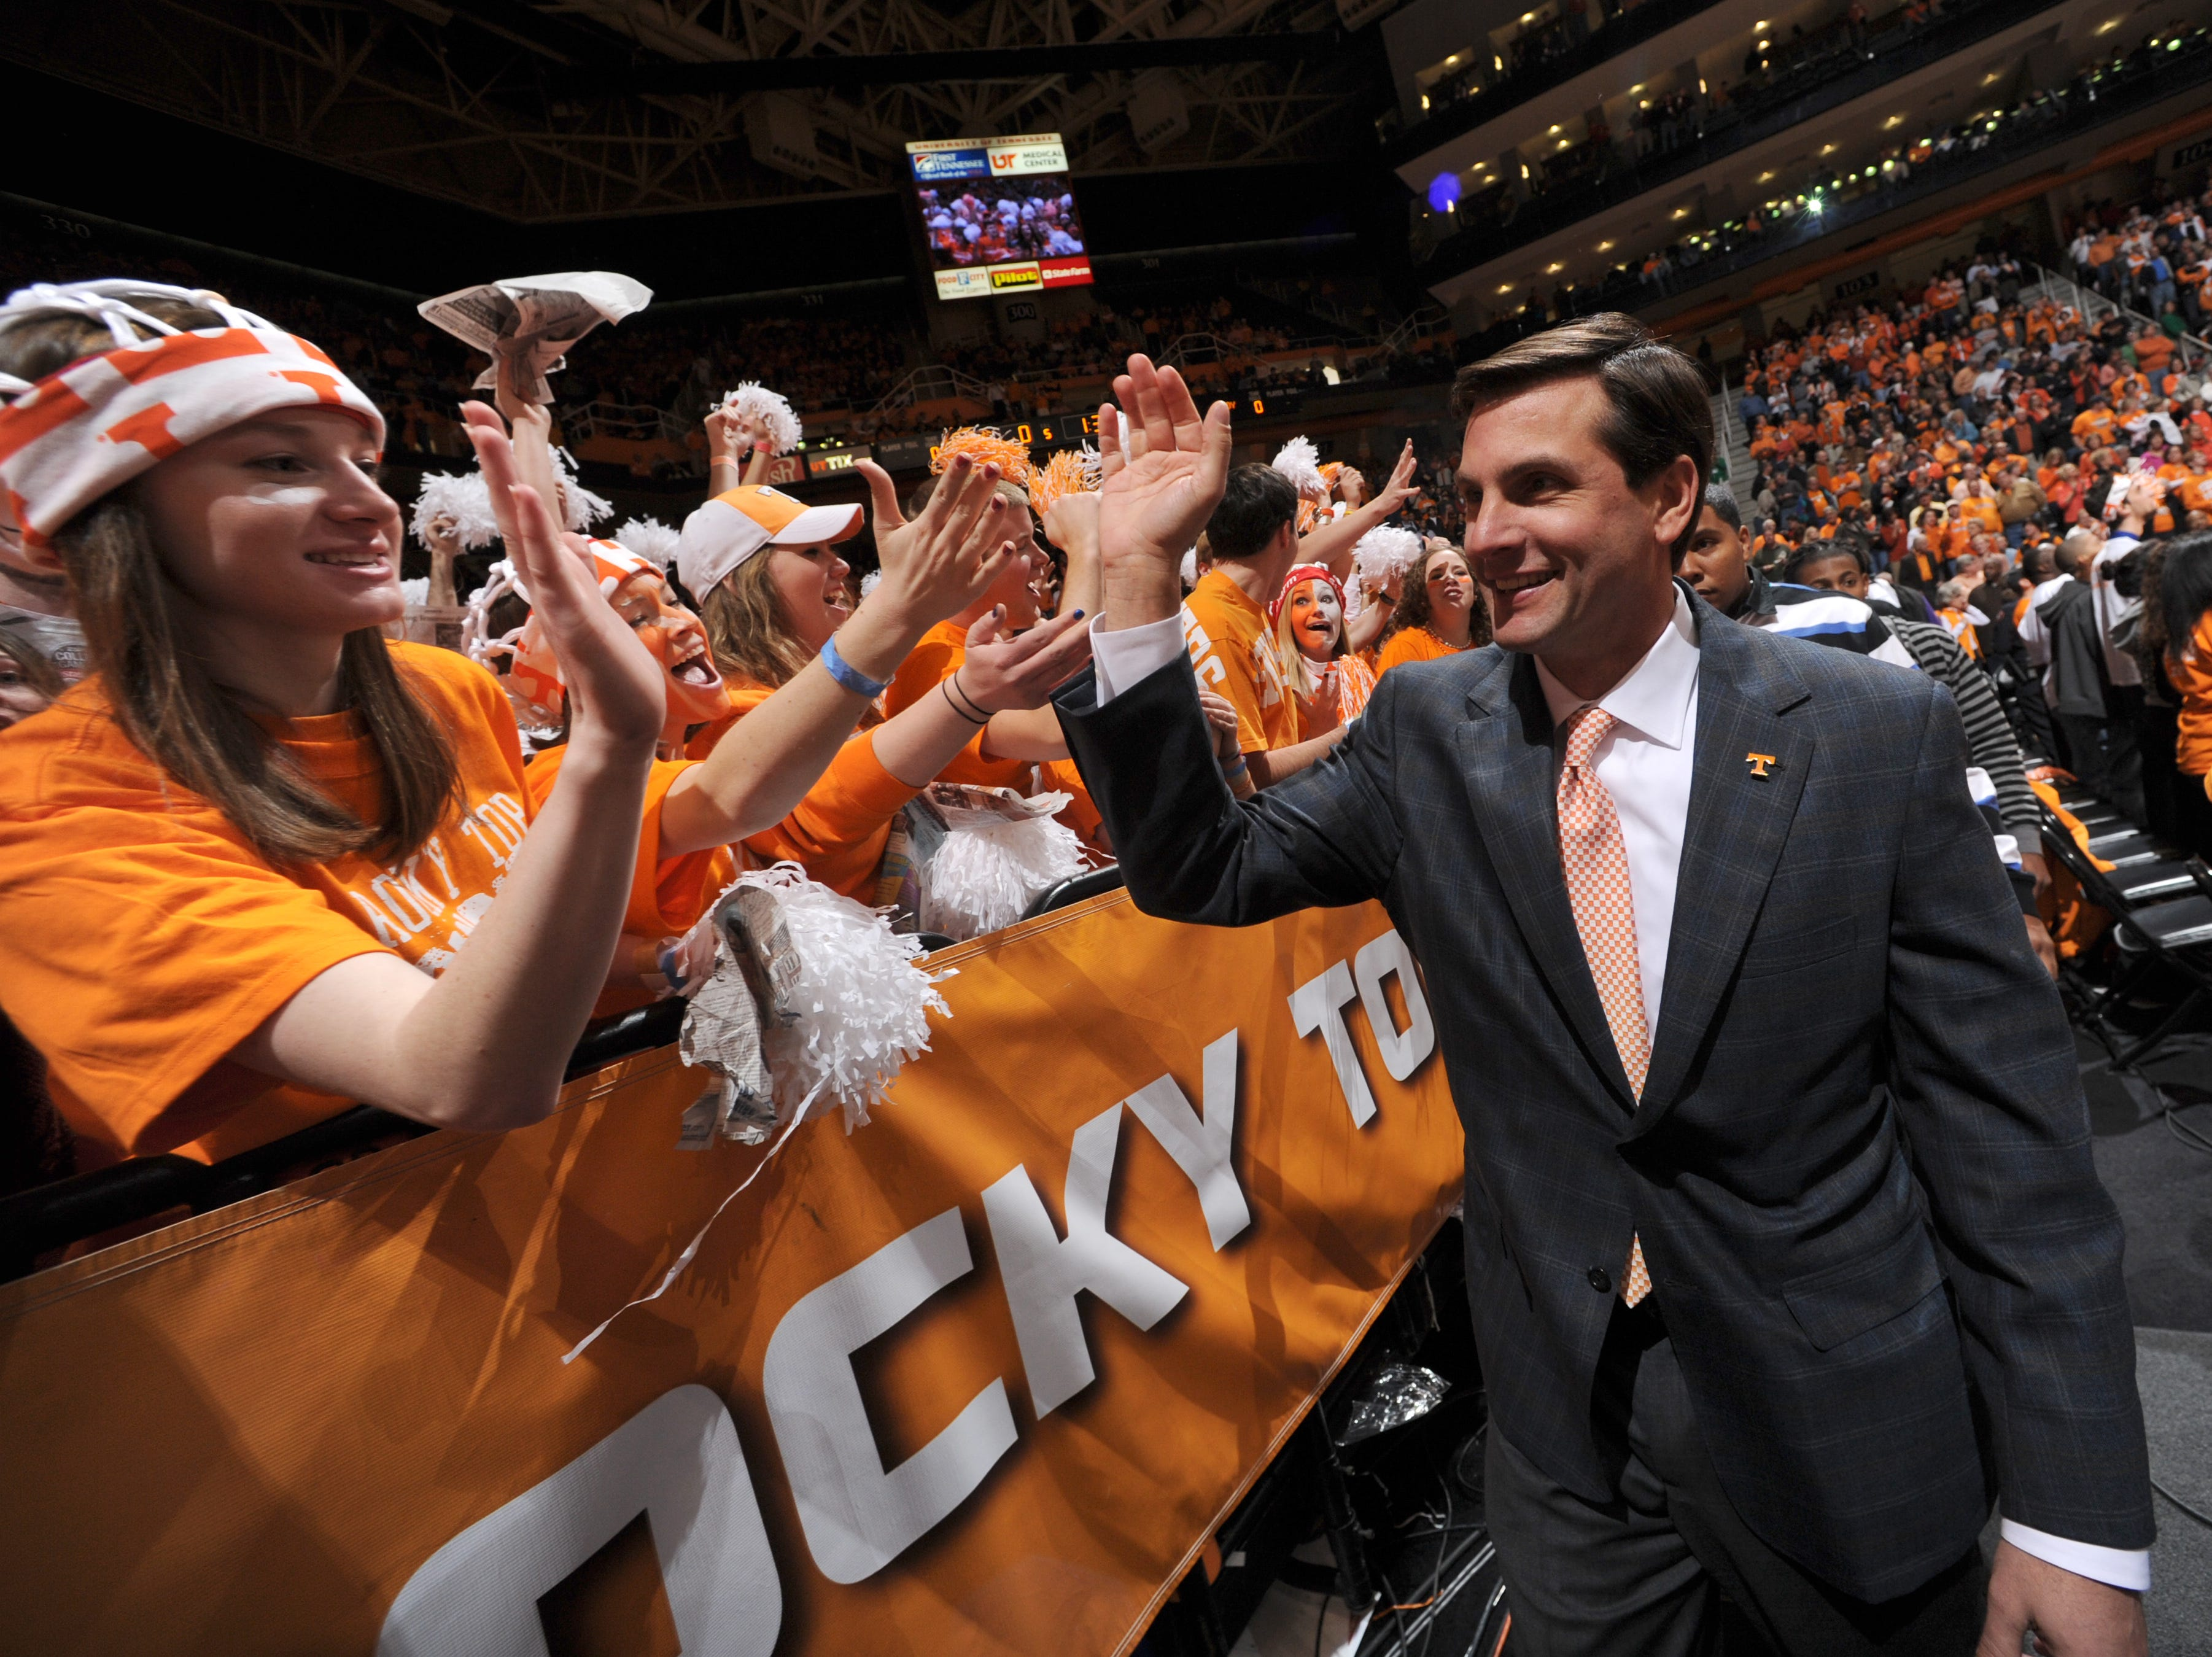 Tennessee football head coach Derek Dooley greets students prior to the Vols' basketball matchup against the Vanderbilt Commodores at Thompson-Boling Arena Saturday, Jan. 15, 2011.